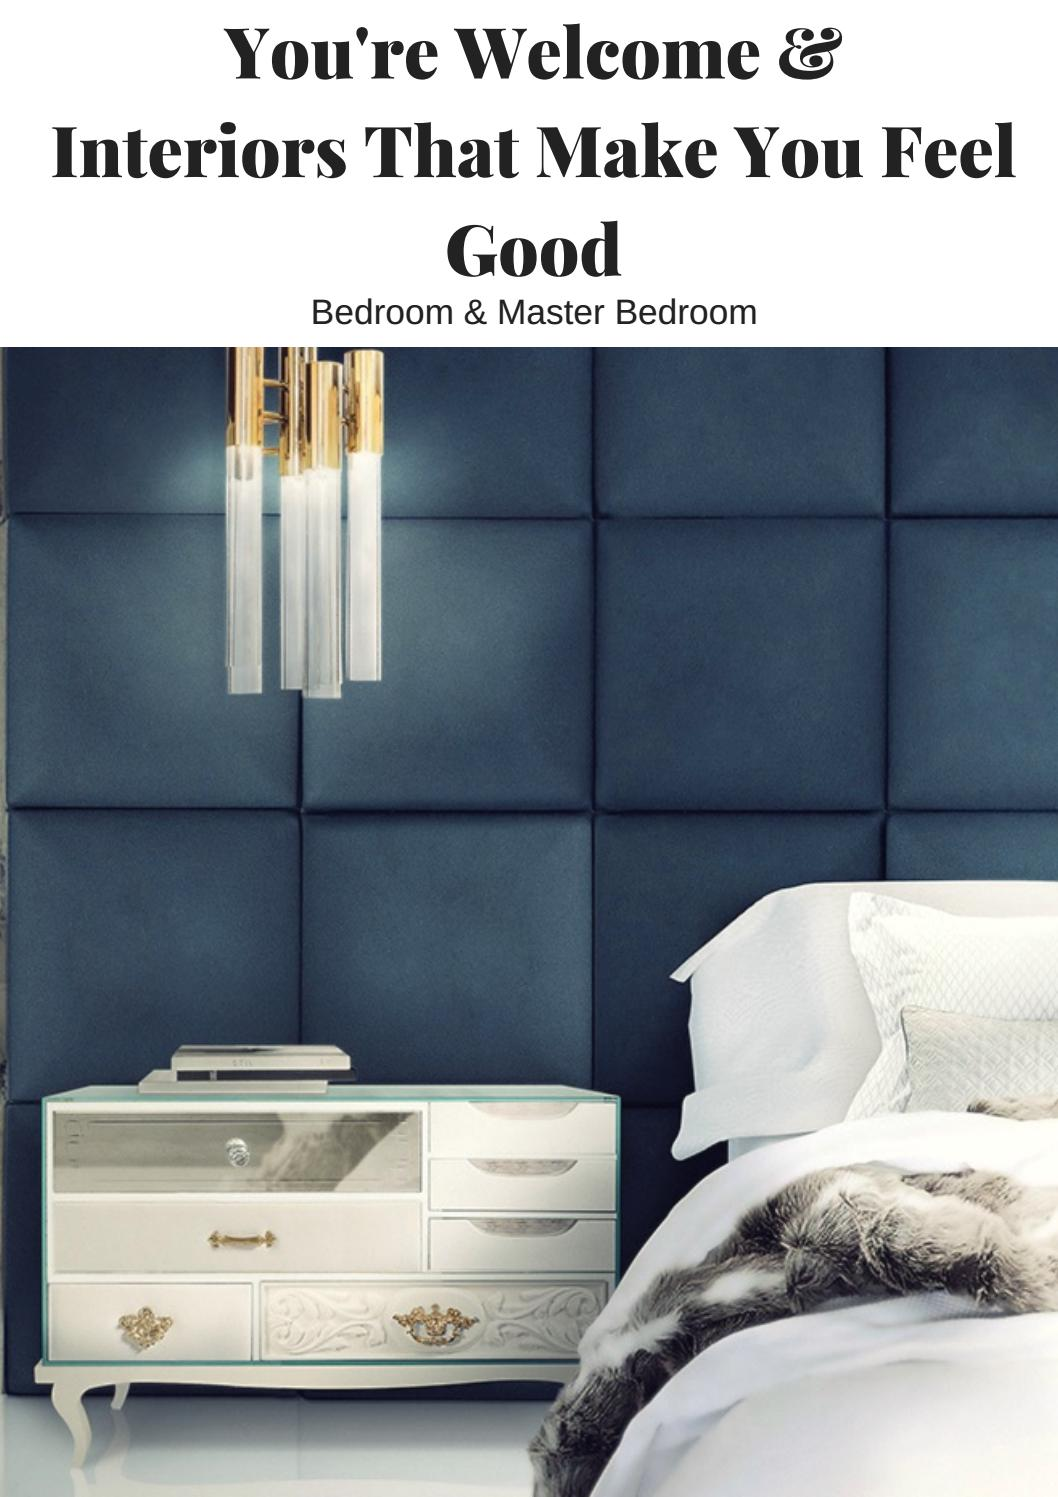 You Re Welcome Interiors That Make You Feel Good Bedroom Master Bedroom By Home Living Magazines Issuu